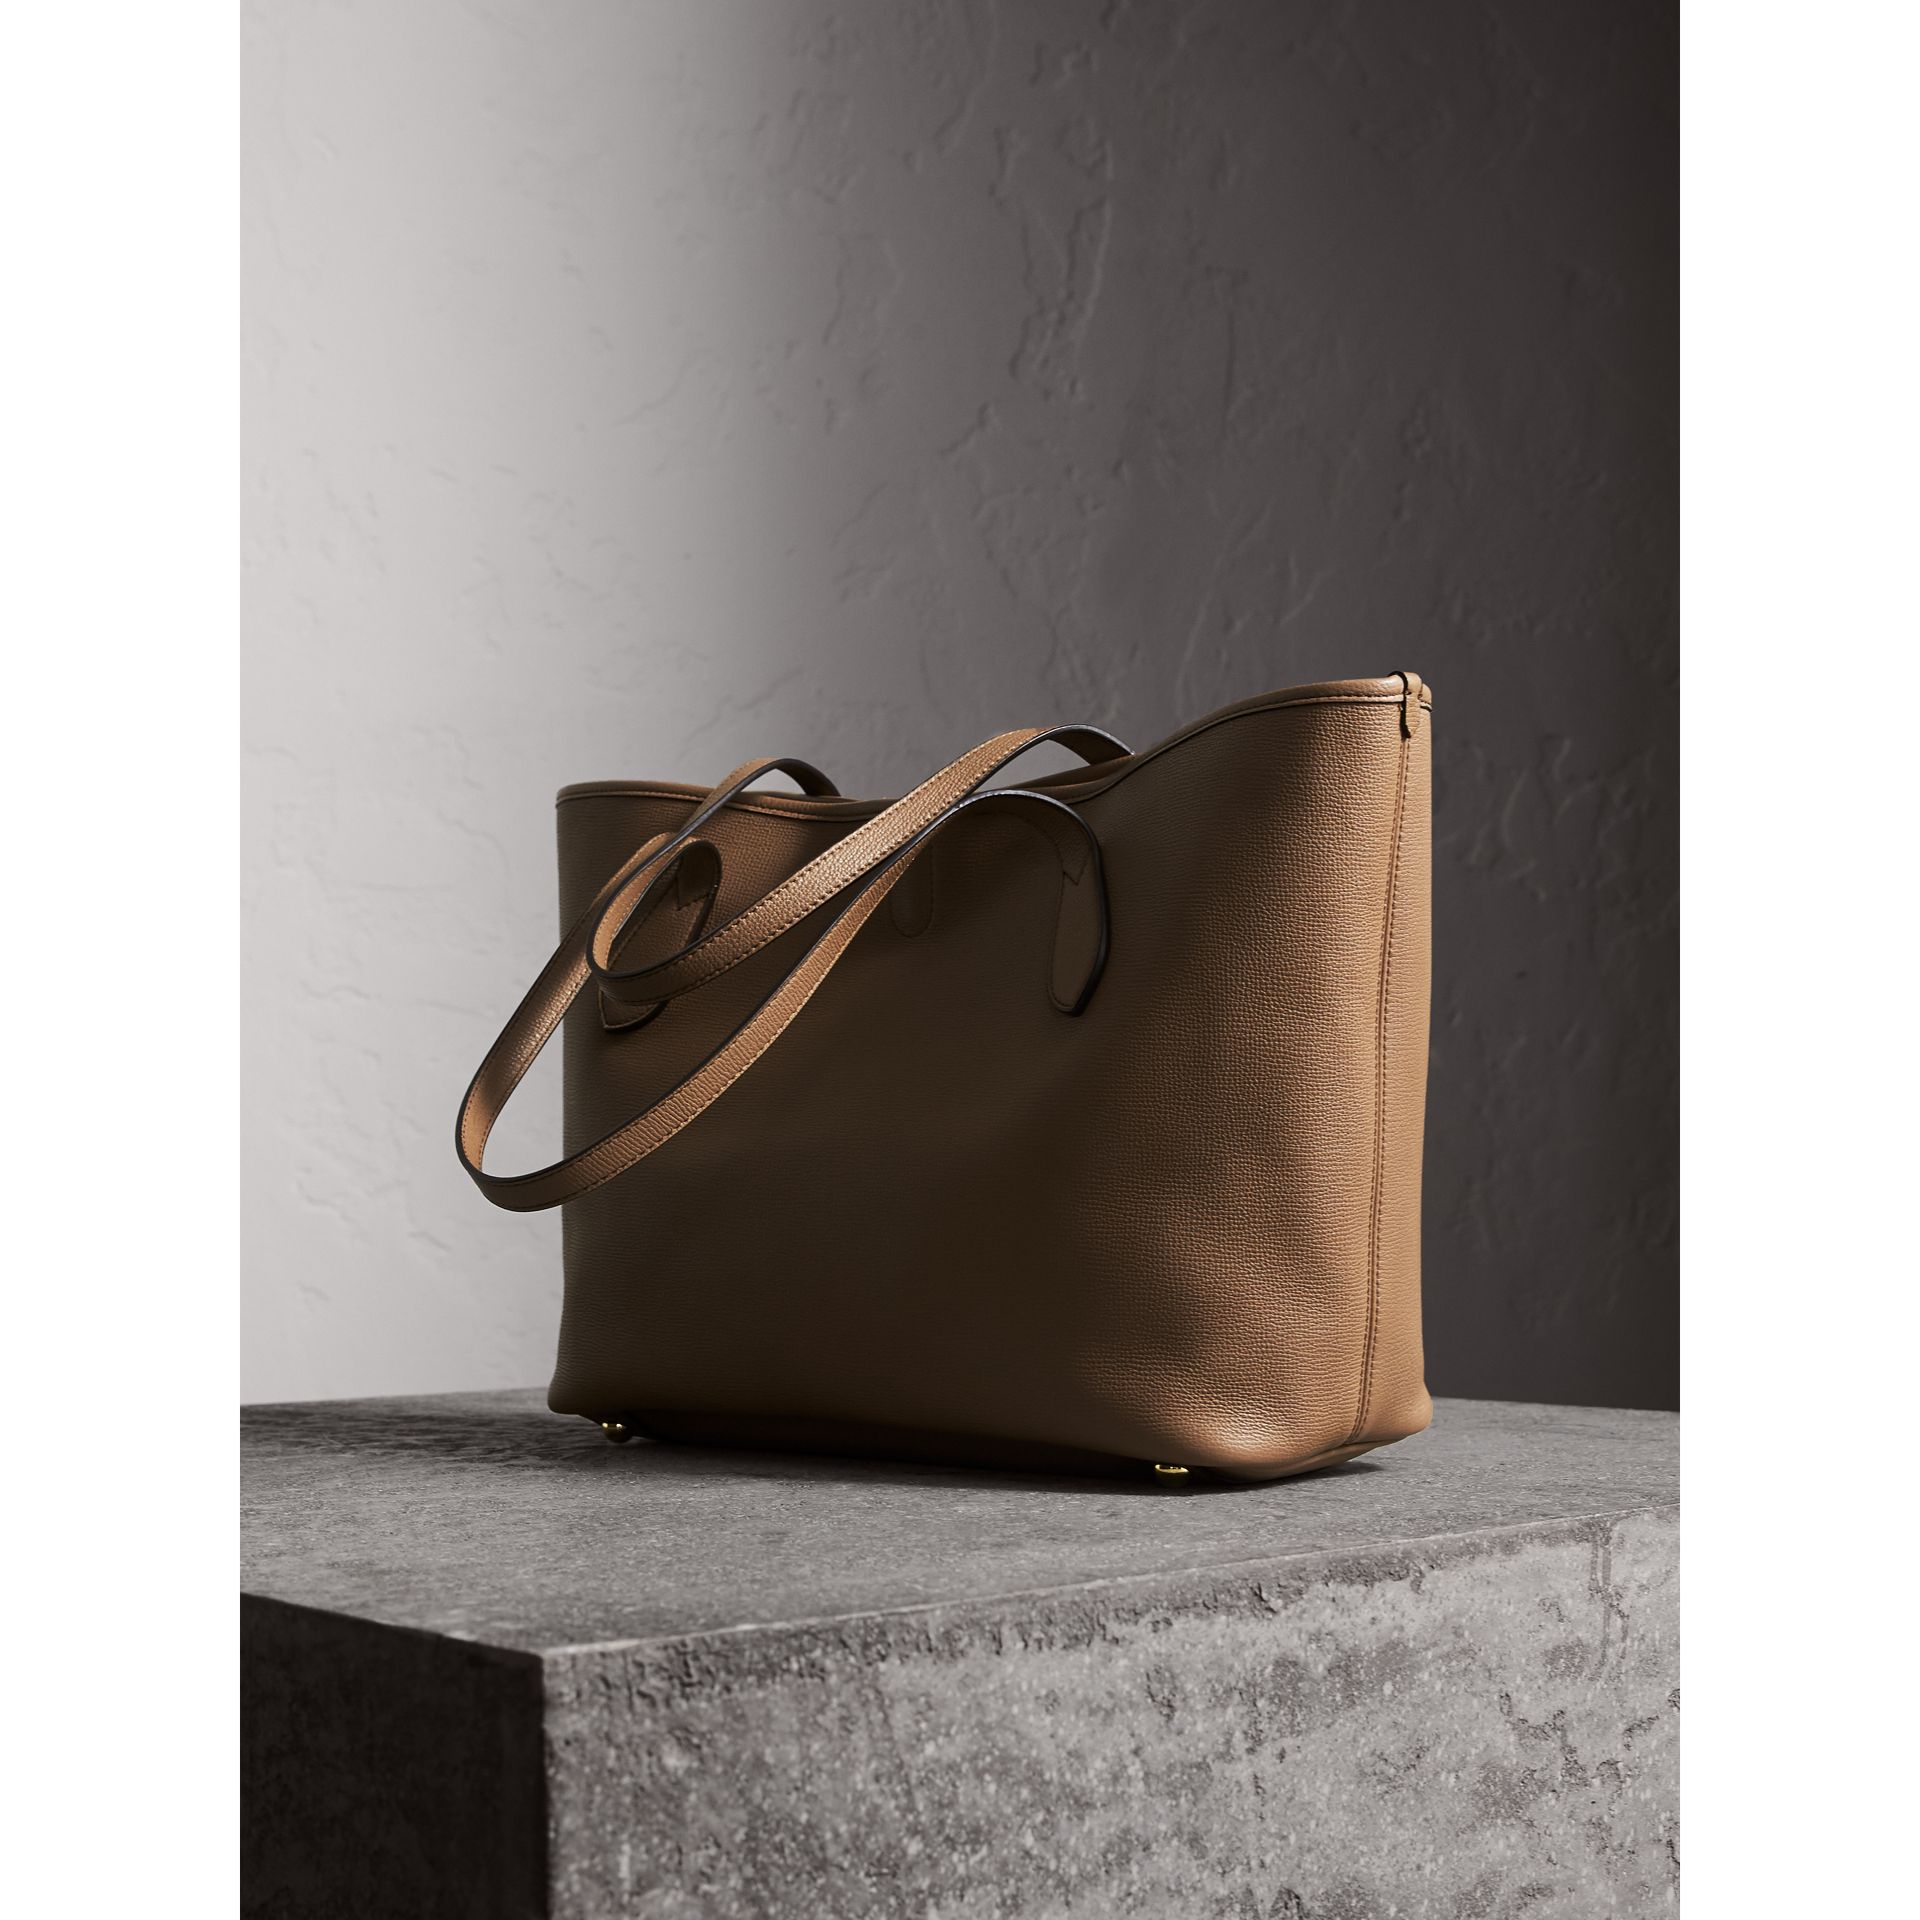 Medium Grainy Leather Tote Bag in Dark Sand - Women | Burberry United States - gallery image 5